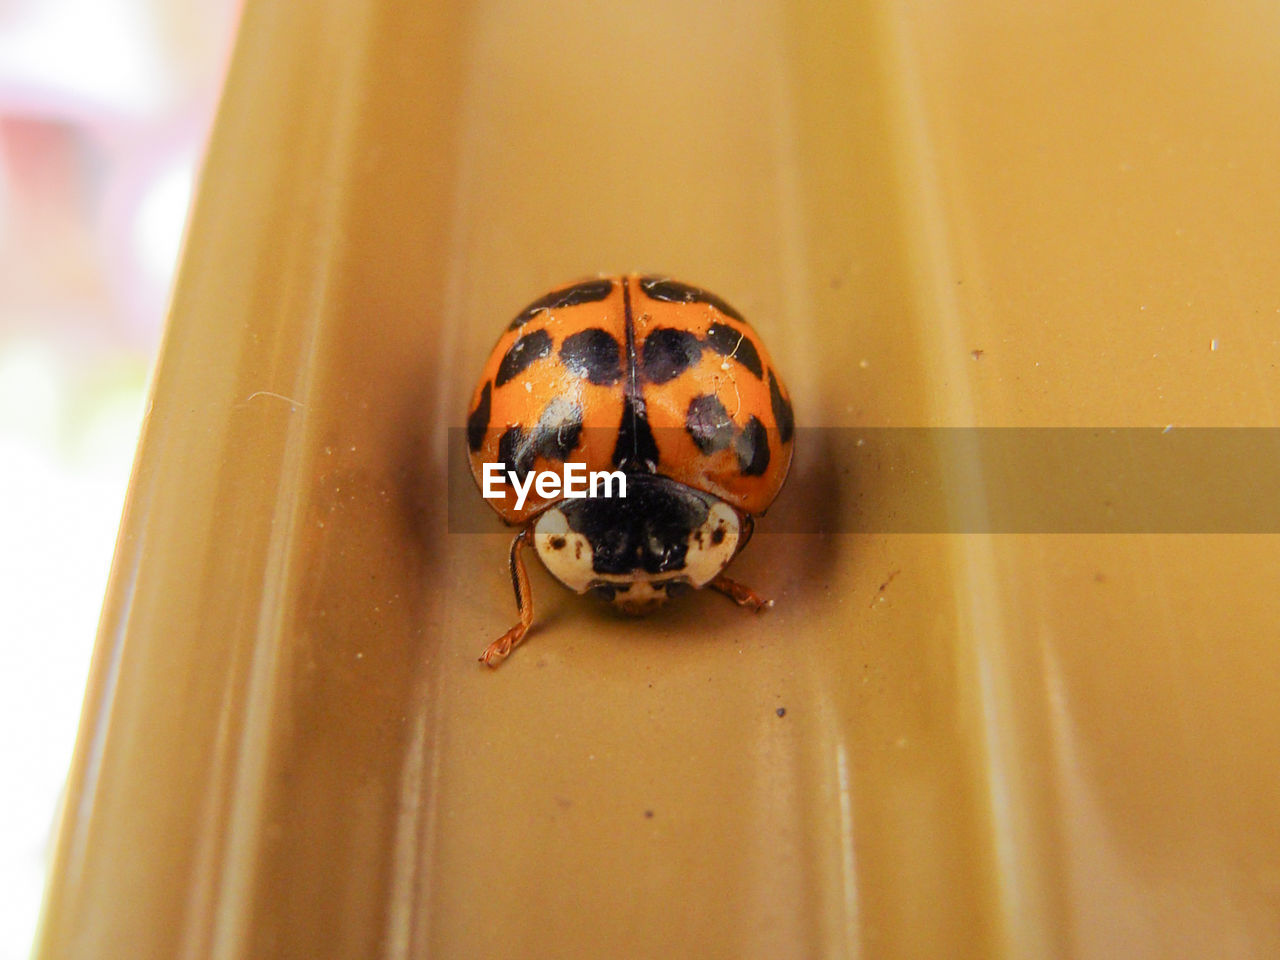 animal wildlife, animal themes, one animal, animal, animals in the wild, invertebrate, insect, close-up, ladybug, beetle, no people, spotted, day, outdoors, focus on foreground, zoology, selective focus, yellow, orange color, nature, small, animal eye